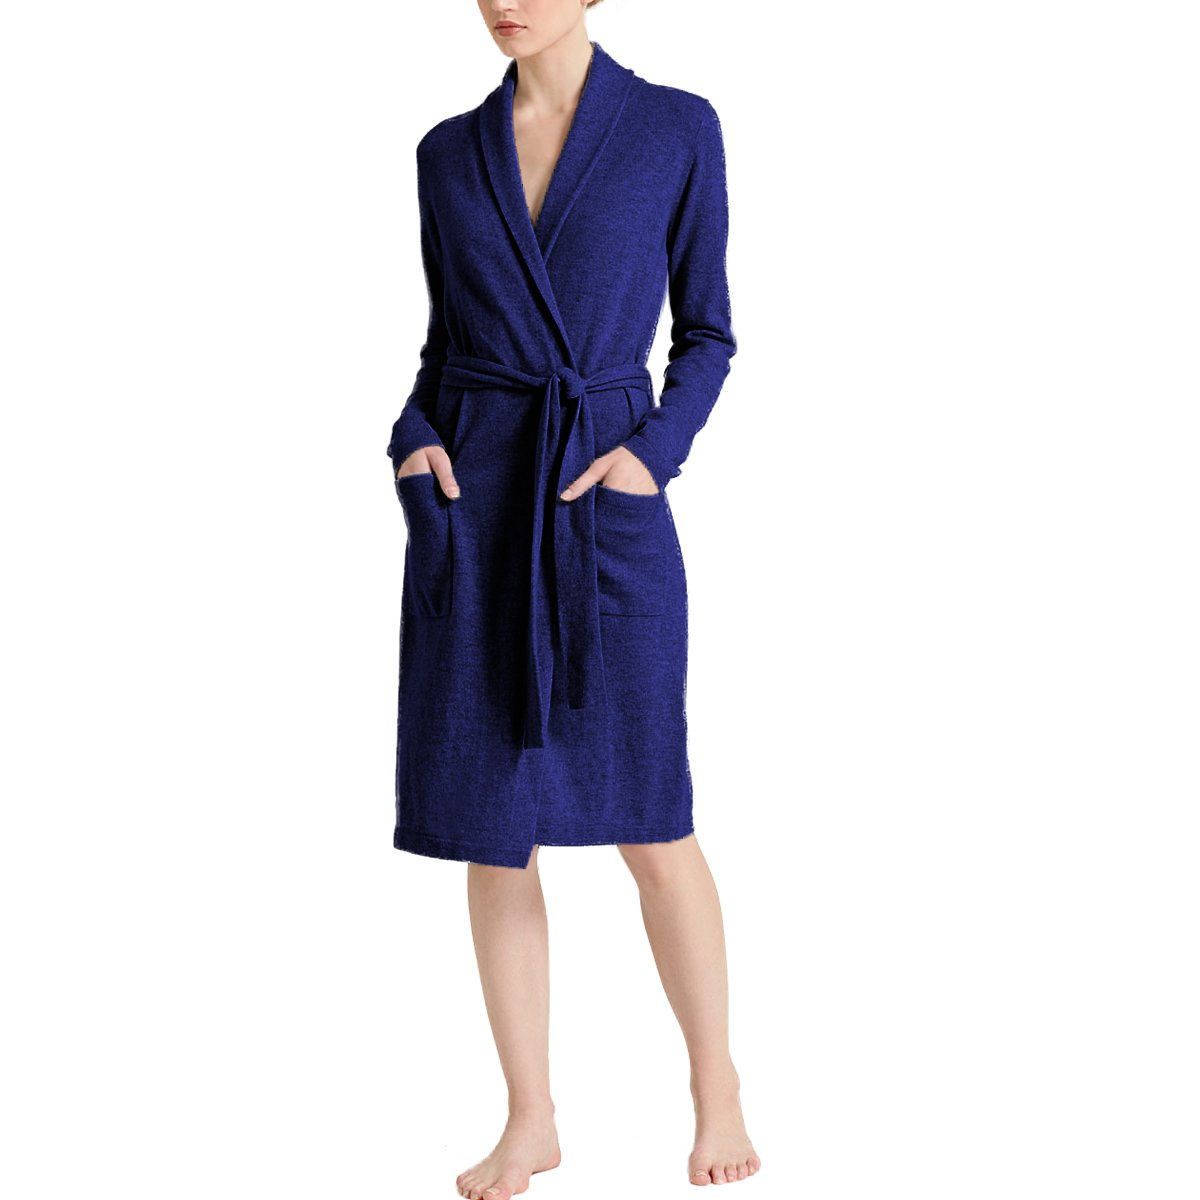 Parisbonbon Women's 100% Cashmere Shawl Collar Robes Color Dark Blue Size S